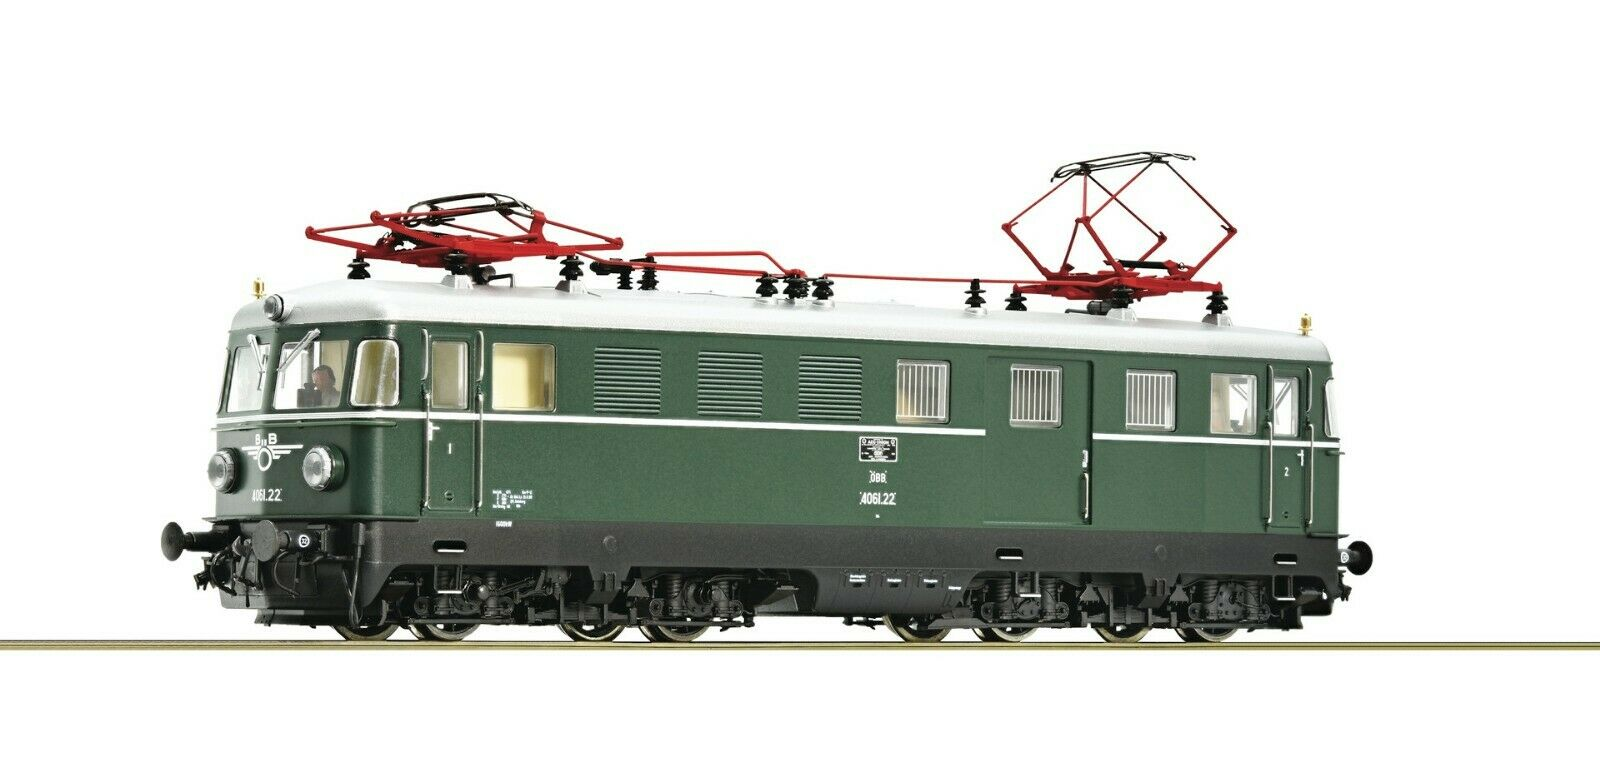 Roco HO scale Electric Railcar class 4061 Digital with Sound OBB